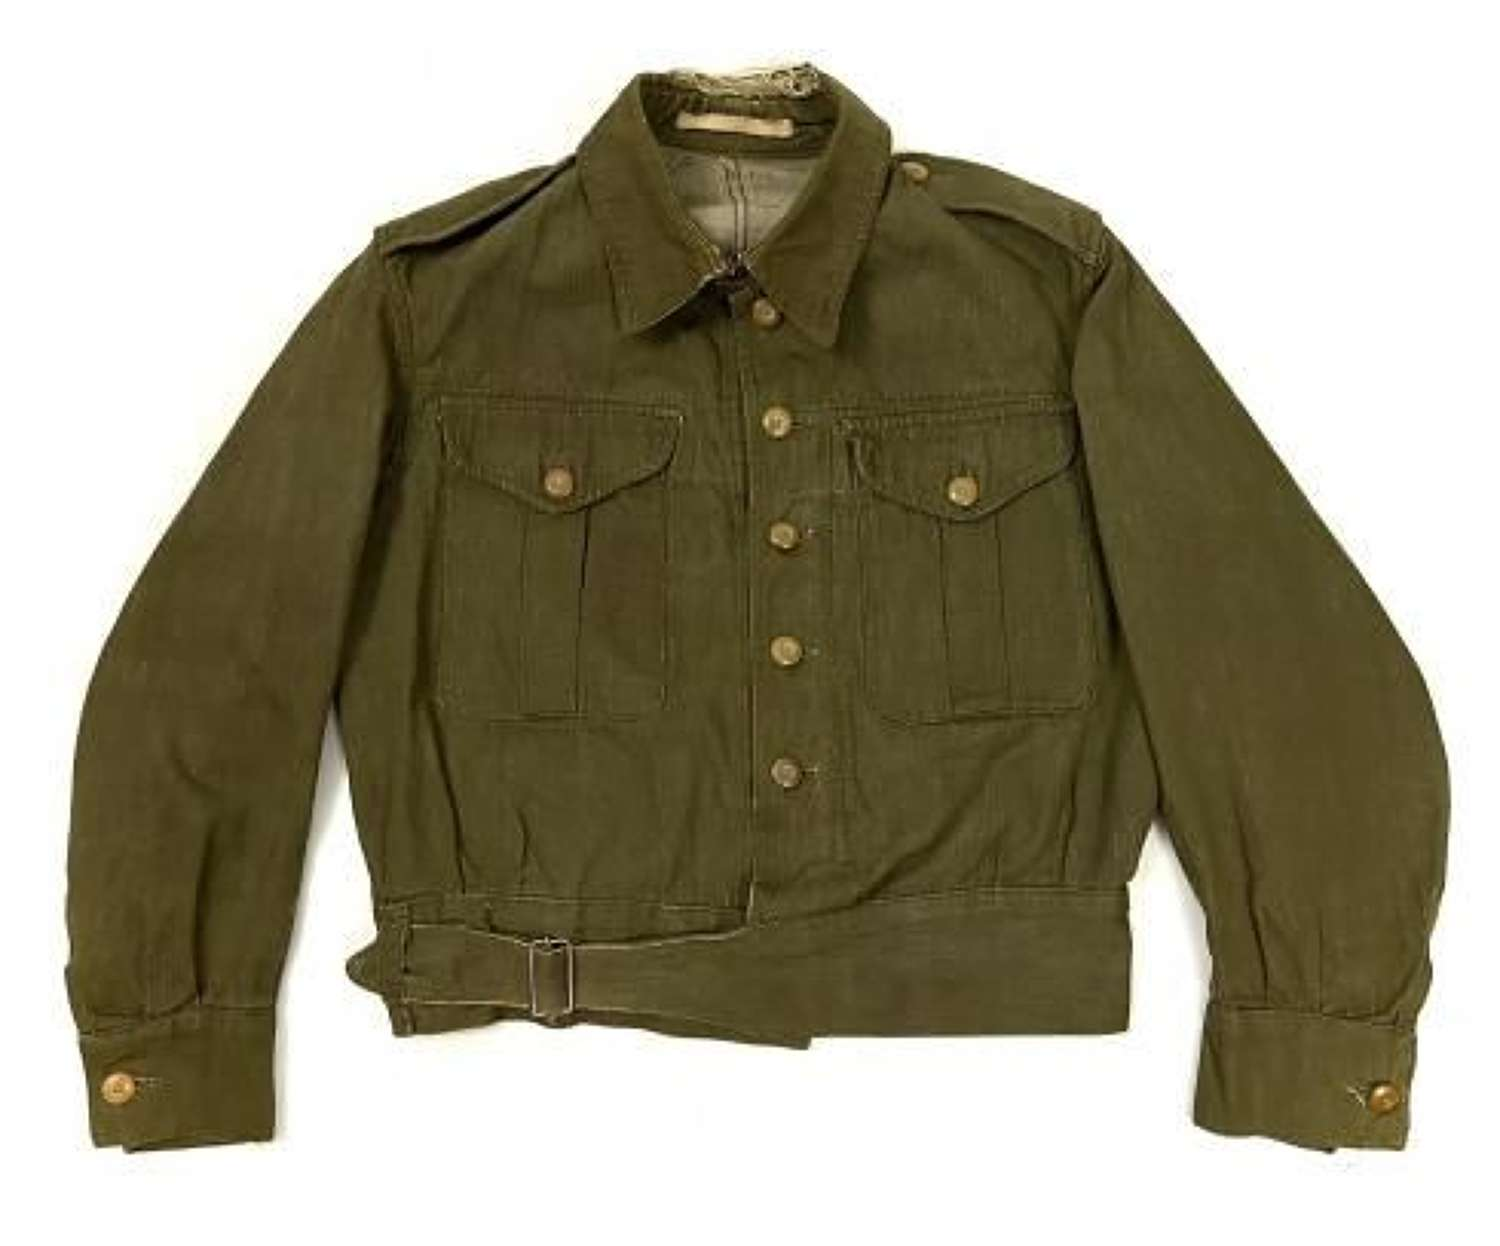 Original Early WW2 British Army Denim Battledress Blouse